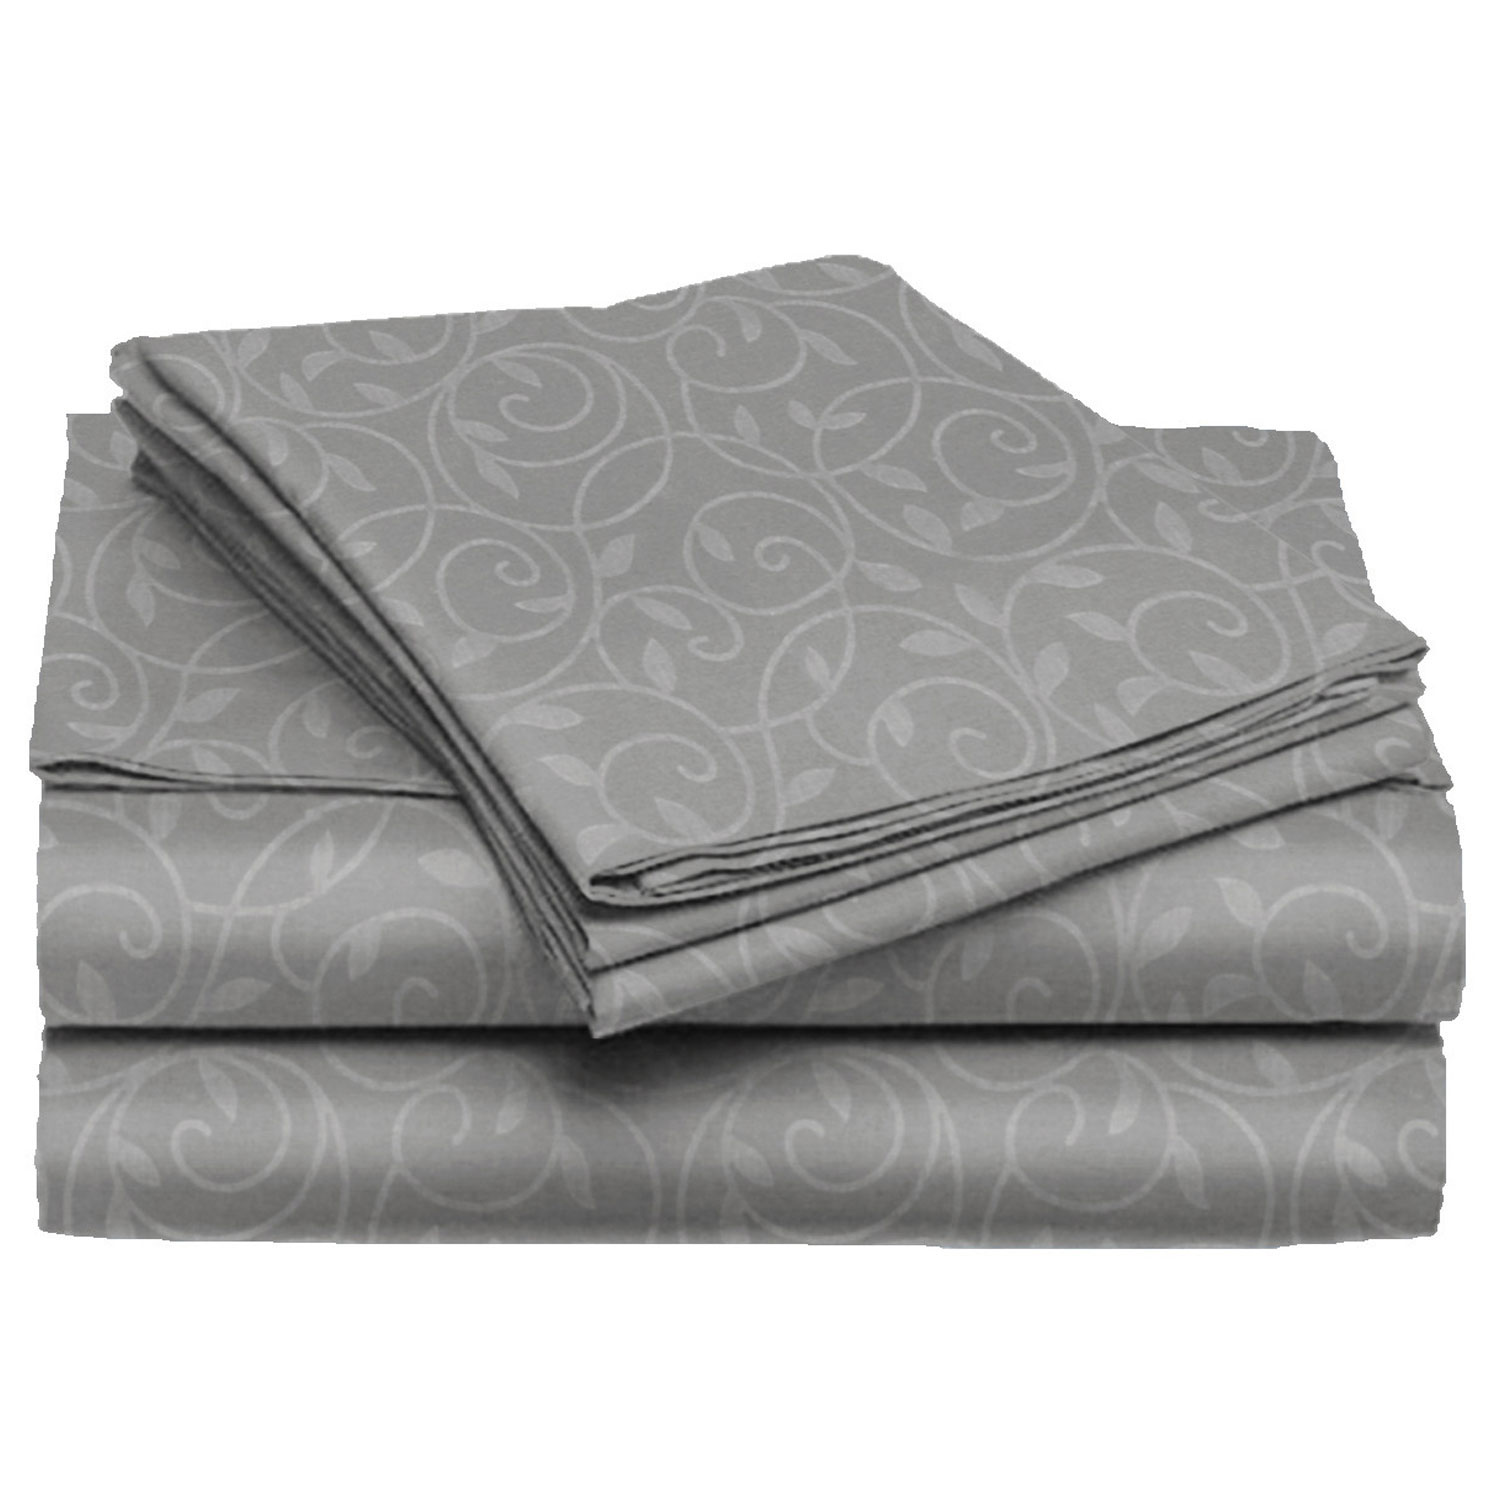 6-Piece Set: Willow Vines Collection Sheets